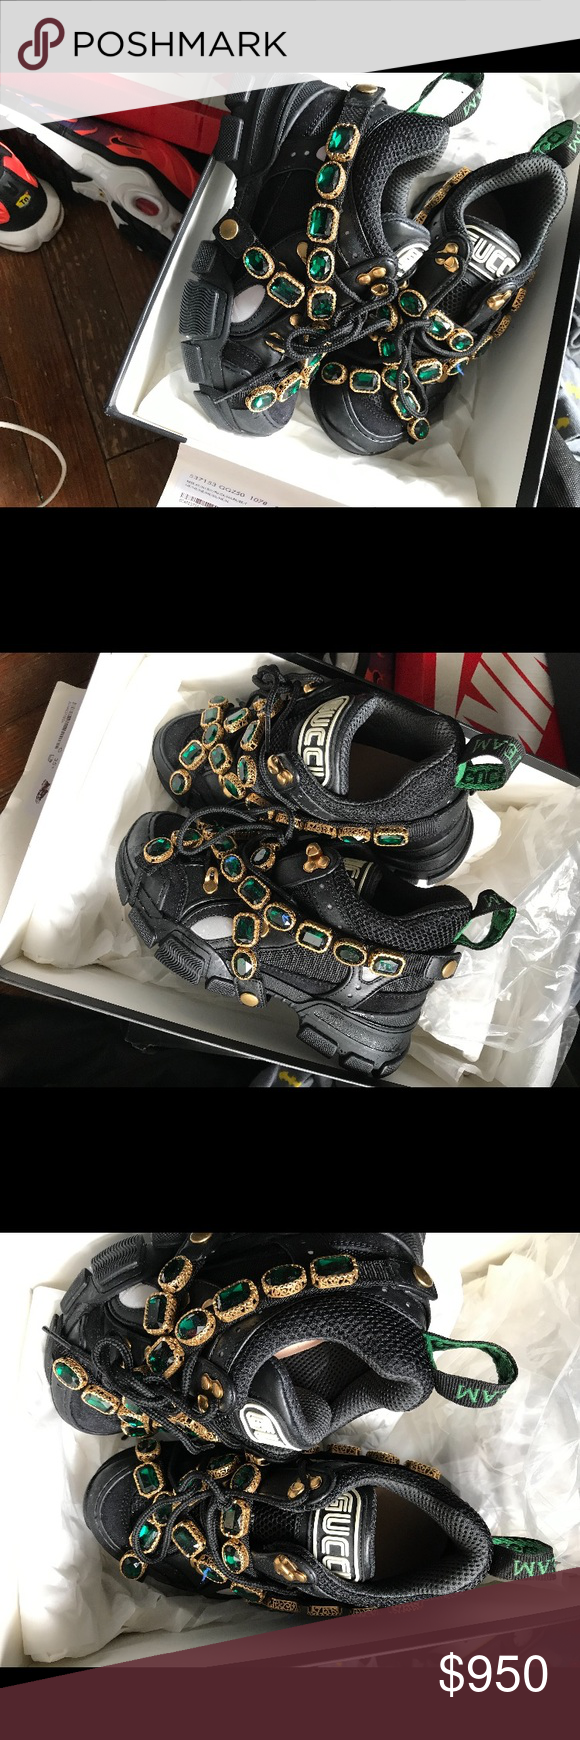 ca6b69f1a19 Spotted while shopping on Poshmark  Gucci Sneakers With Removable Crystals!   poshmark  fashion